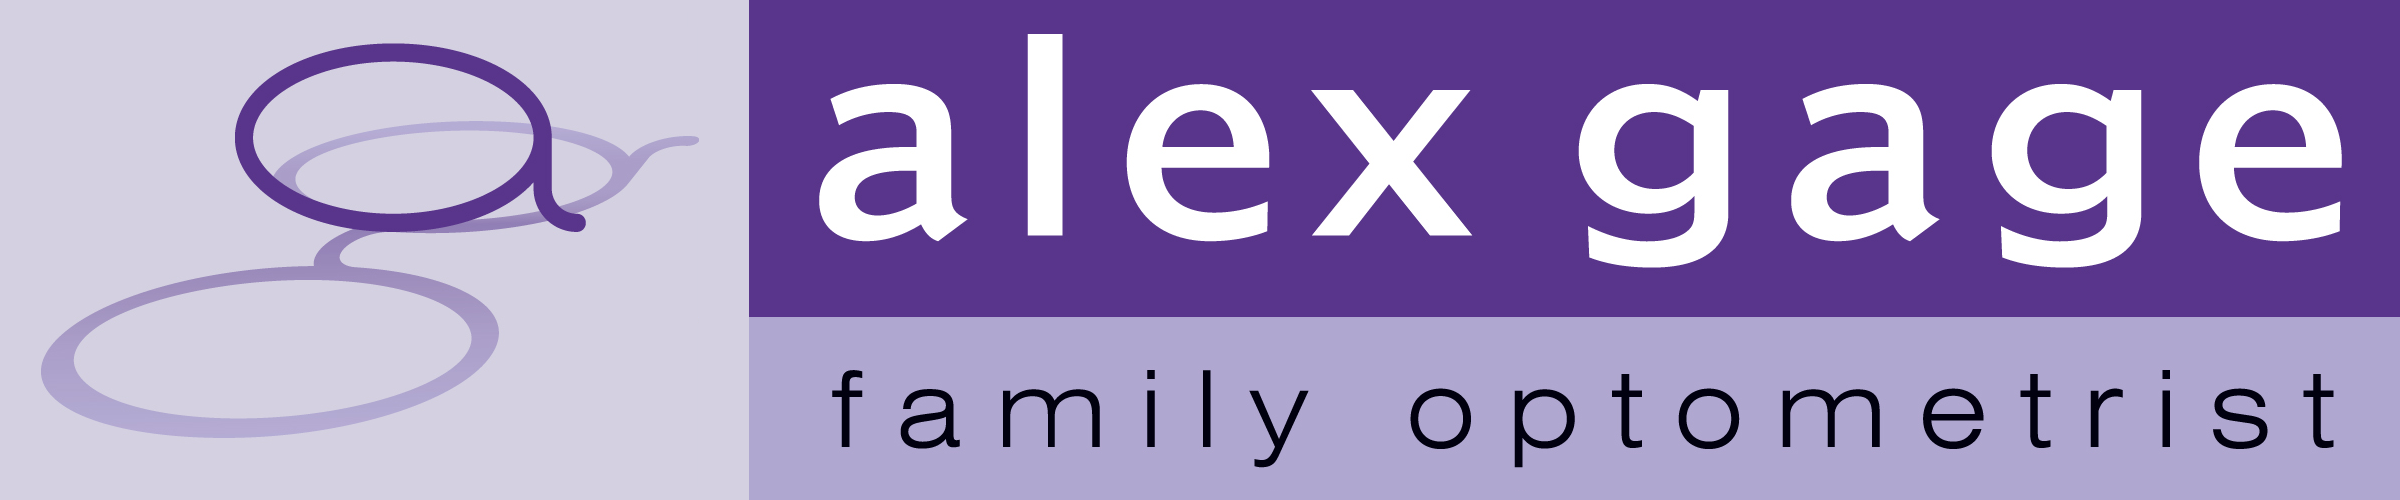 Alex Gage Family Optometrist (logo)